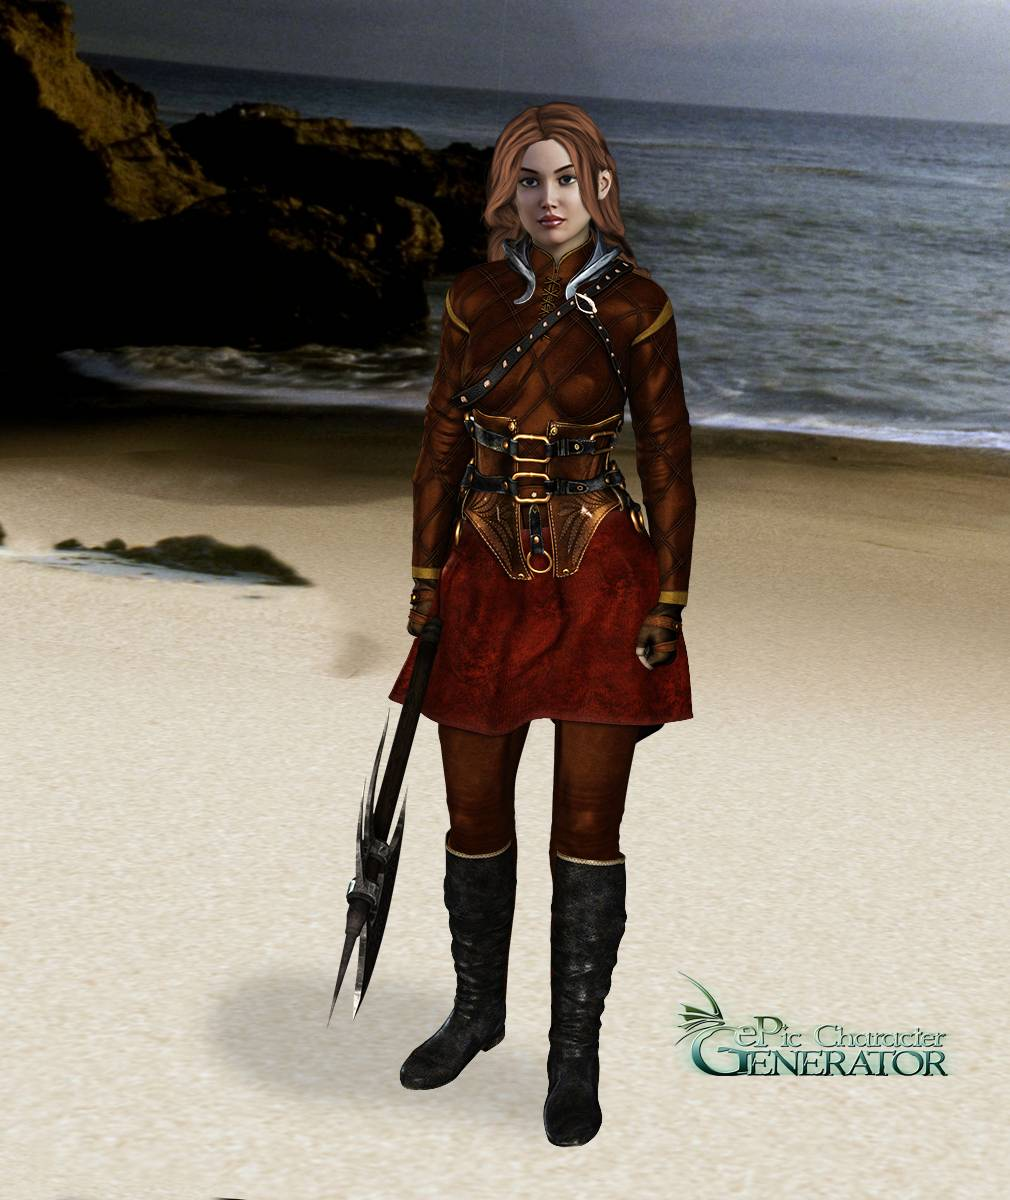 ePic Character Generator Season 2 Female Warrior Screenshot 05